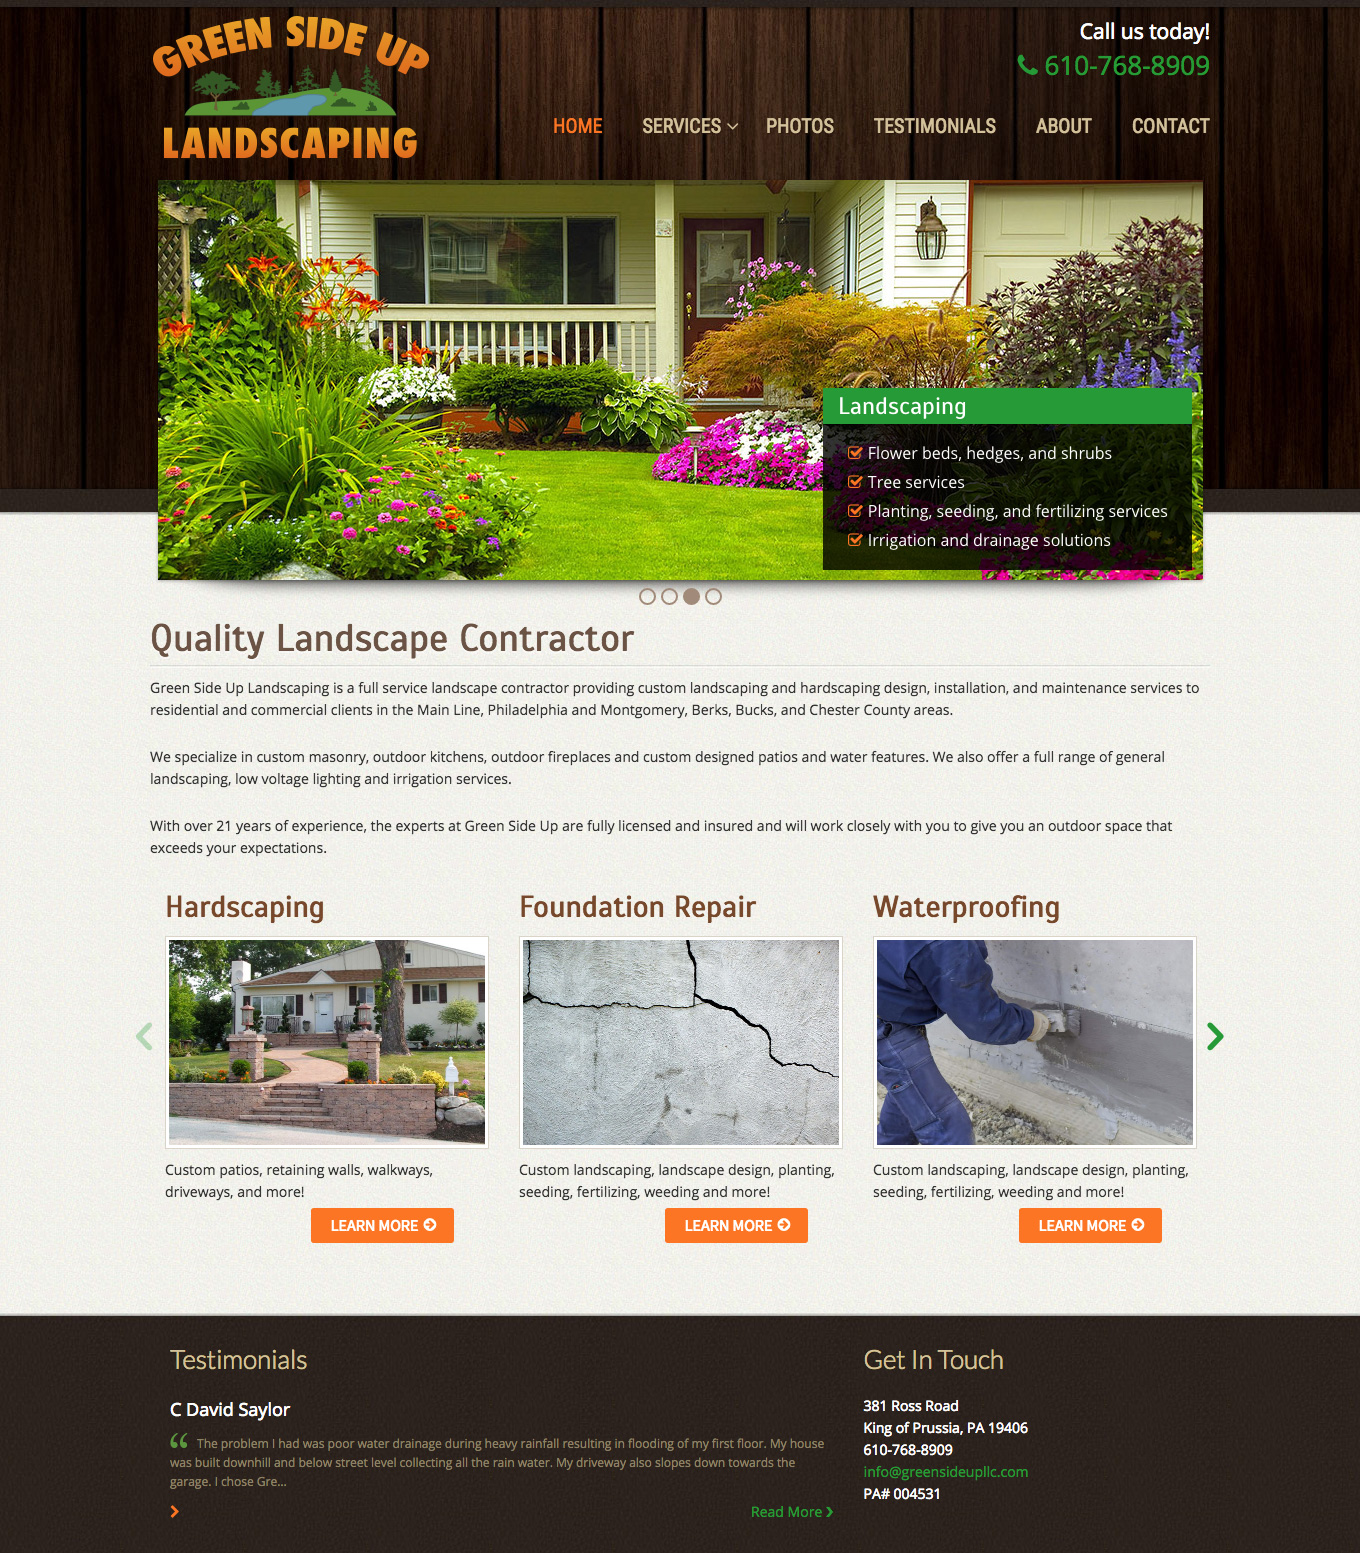 - Green Side Up Landscaping